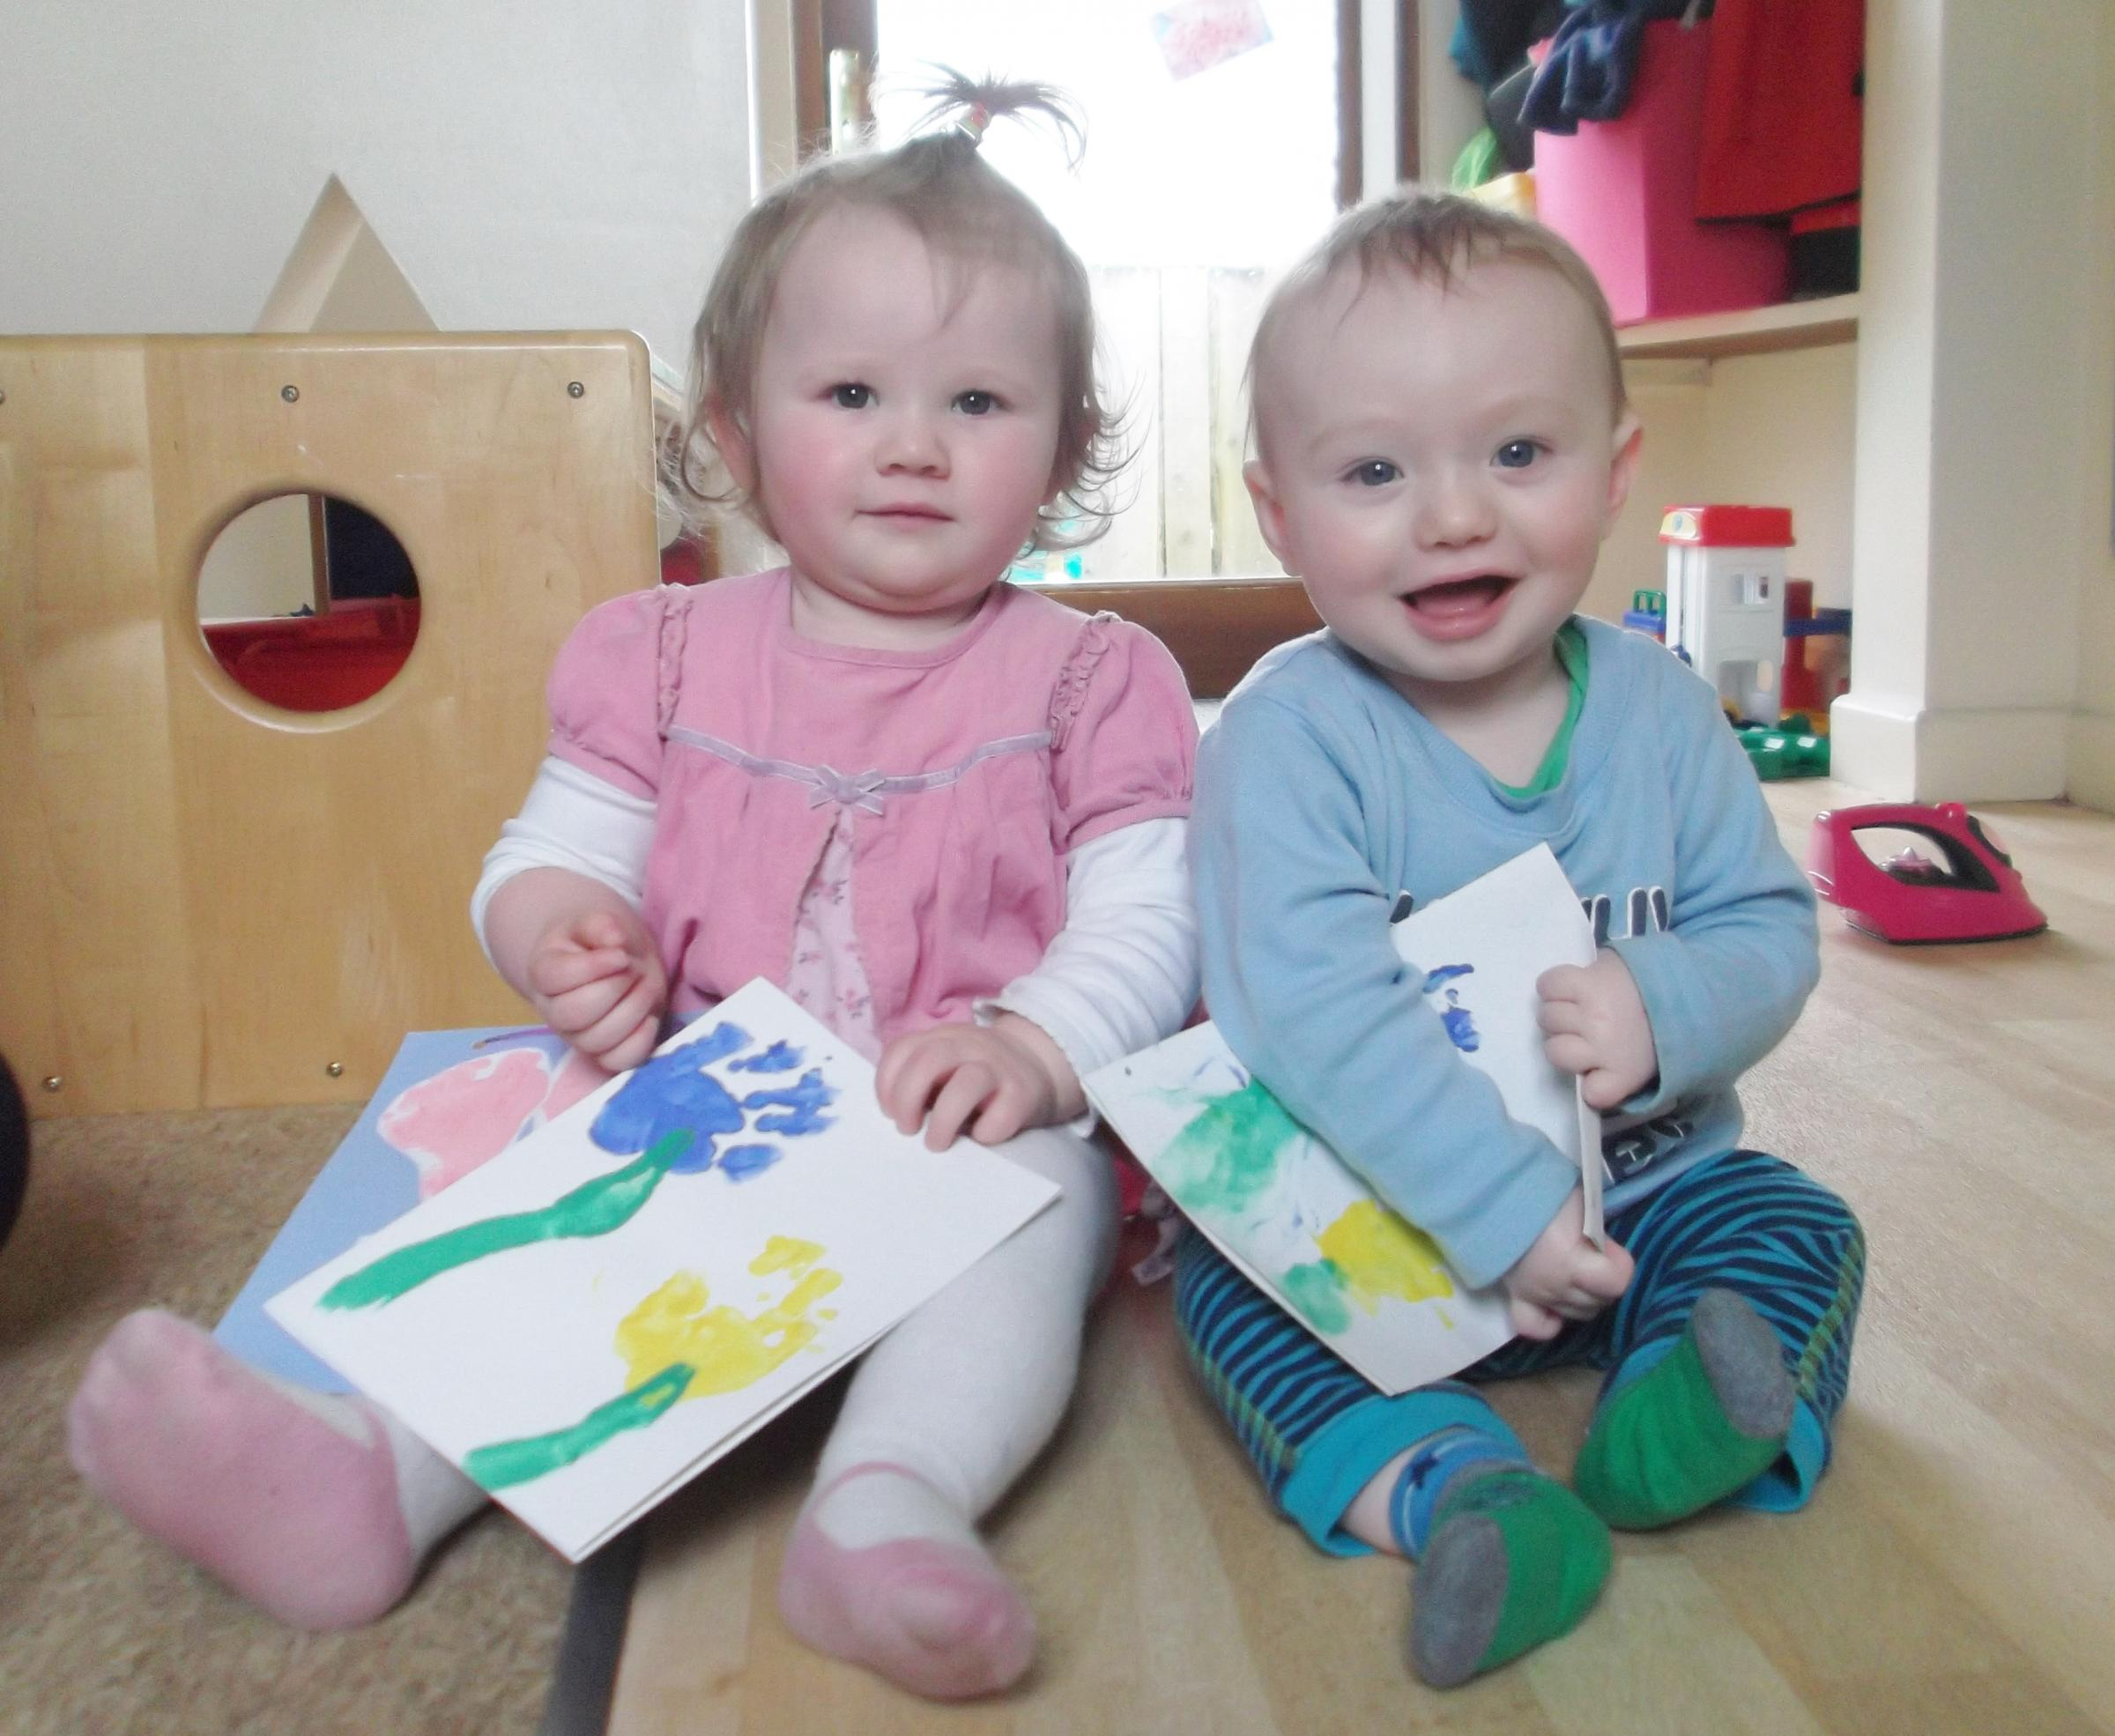 toddlers Jessie Evans (aged 14 months) and Harry Smith (aged 7 months) showing off their hand-print Mother's Day cards.